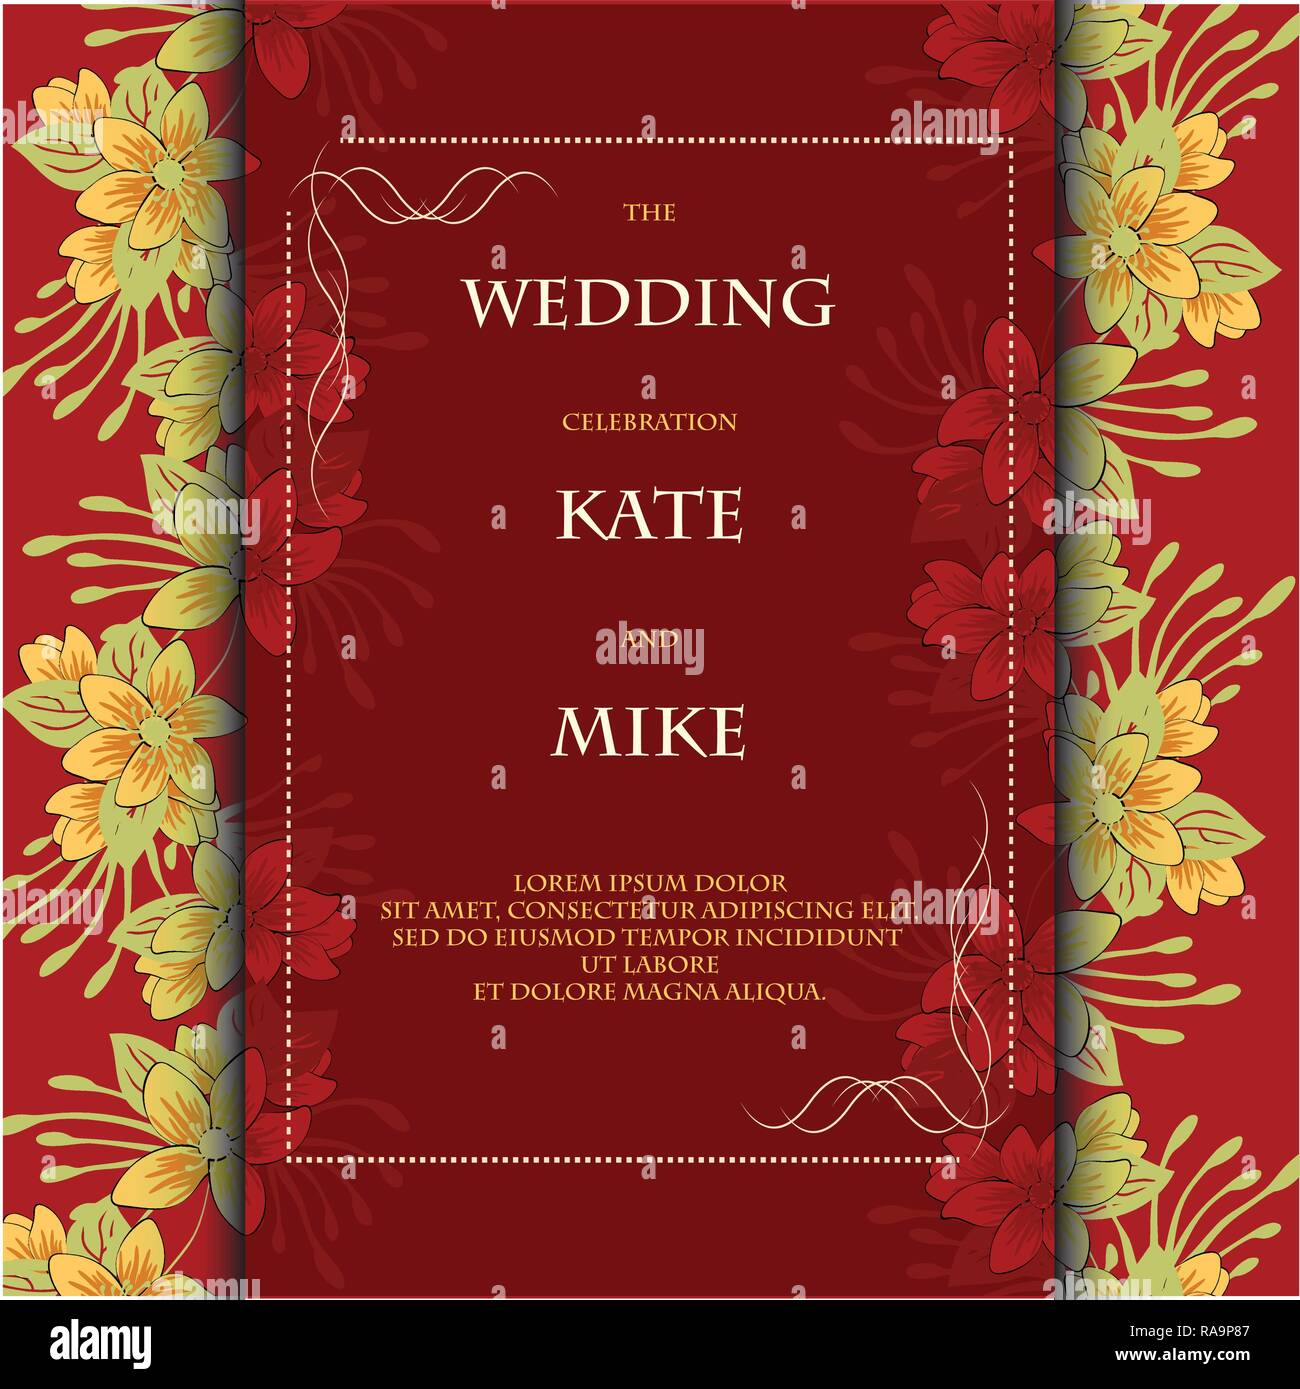 https www alamy com wedding invitation card template with flower floral background vector illustration eps 10 image230096391 html